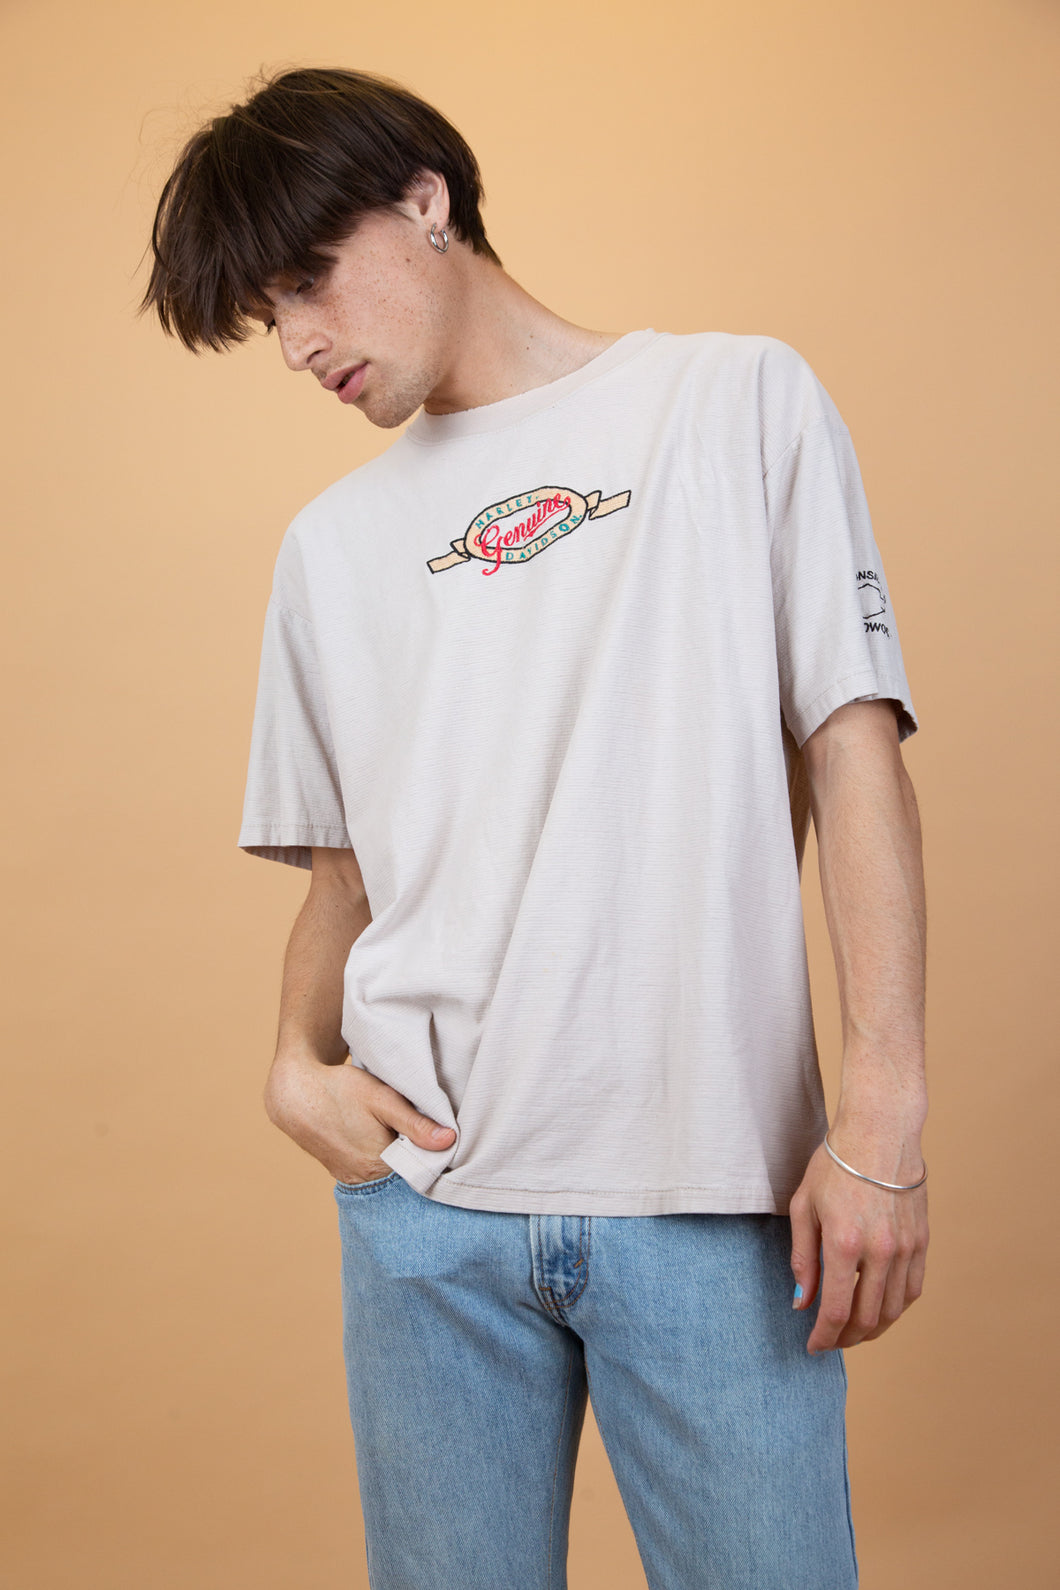 Light brown, creamy colour single-stitch tee in a ribbed, textured material with an embroidered appliqué of 'Harley Davidson Genuine' centred on the front. Repping Wisconsin H.D on the left sleeve.